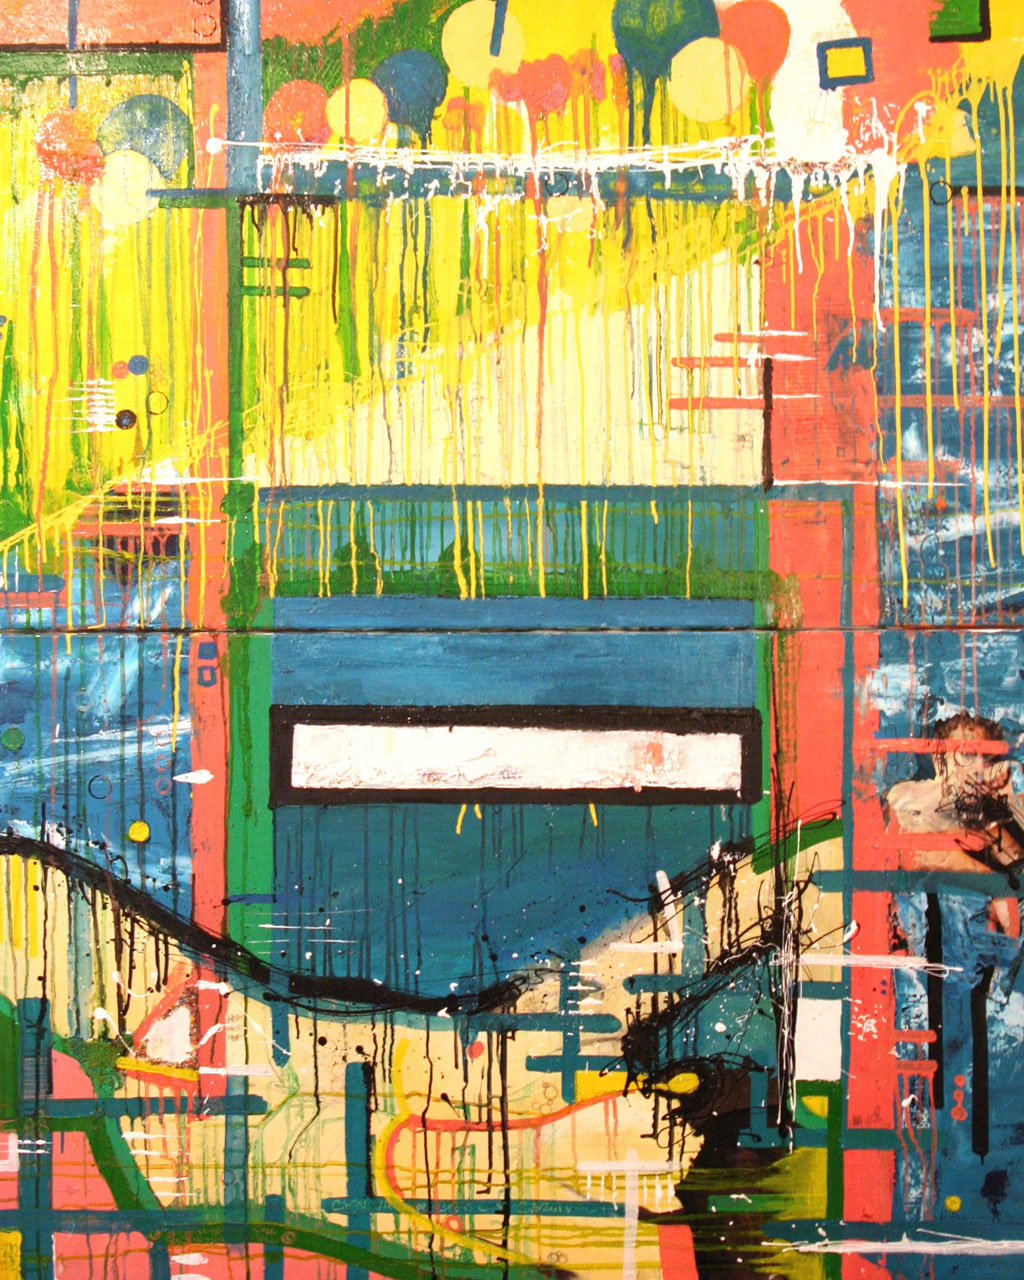 A Dirty Paradise, 2006, Oil and Mixed Media on canvas, 55 x 60 inches